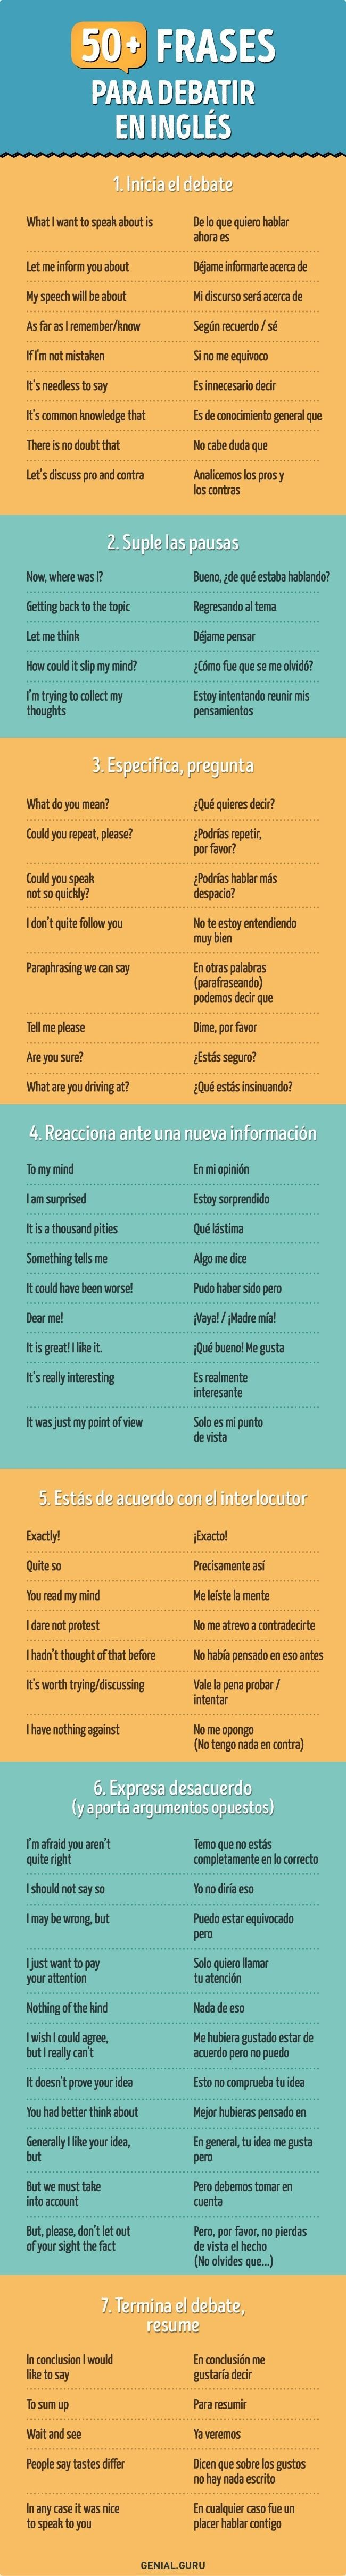 44 best Recursos sobre lletres images on Pinterest | Learning, Day ...